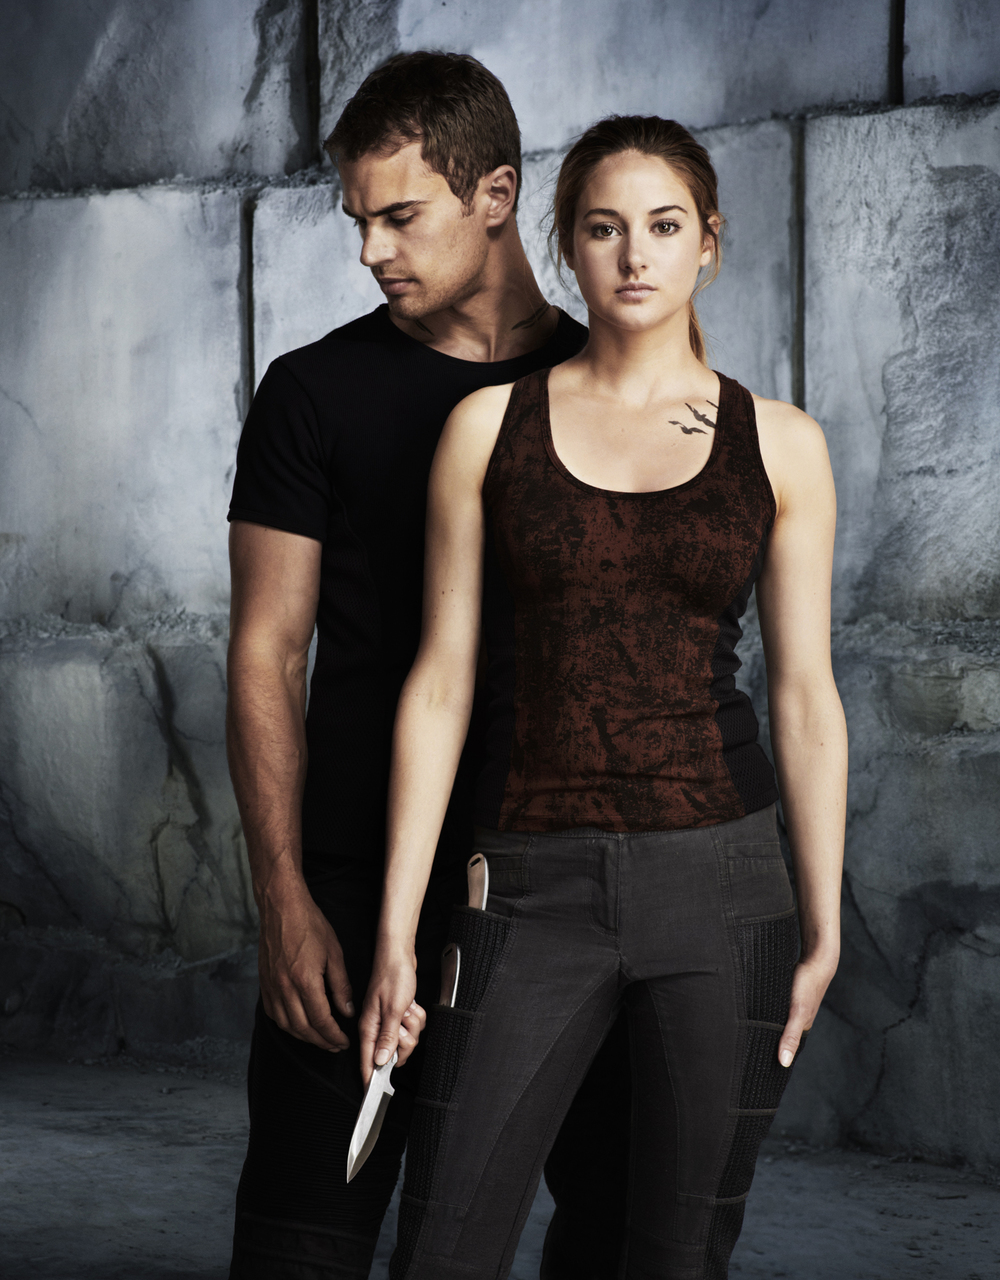 Shailene Woodley & Theo James - Chicago, IL